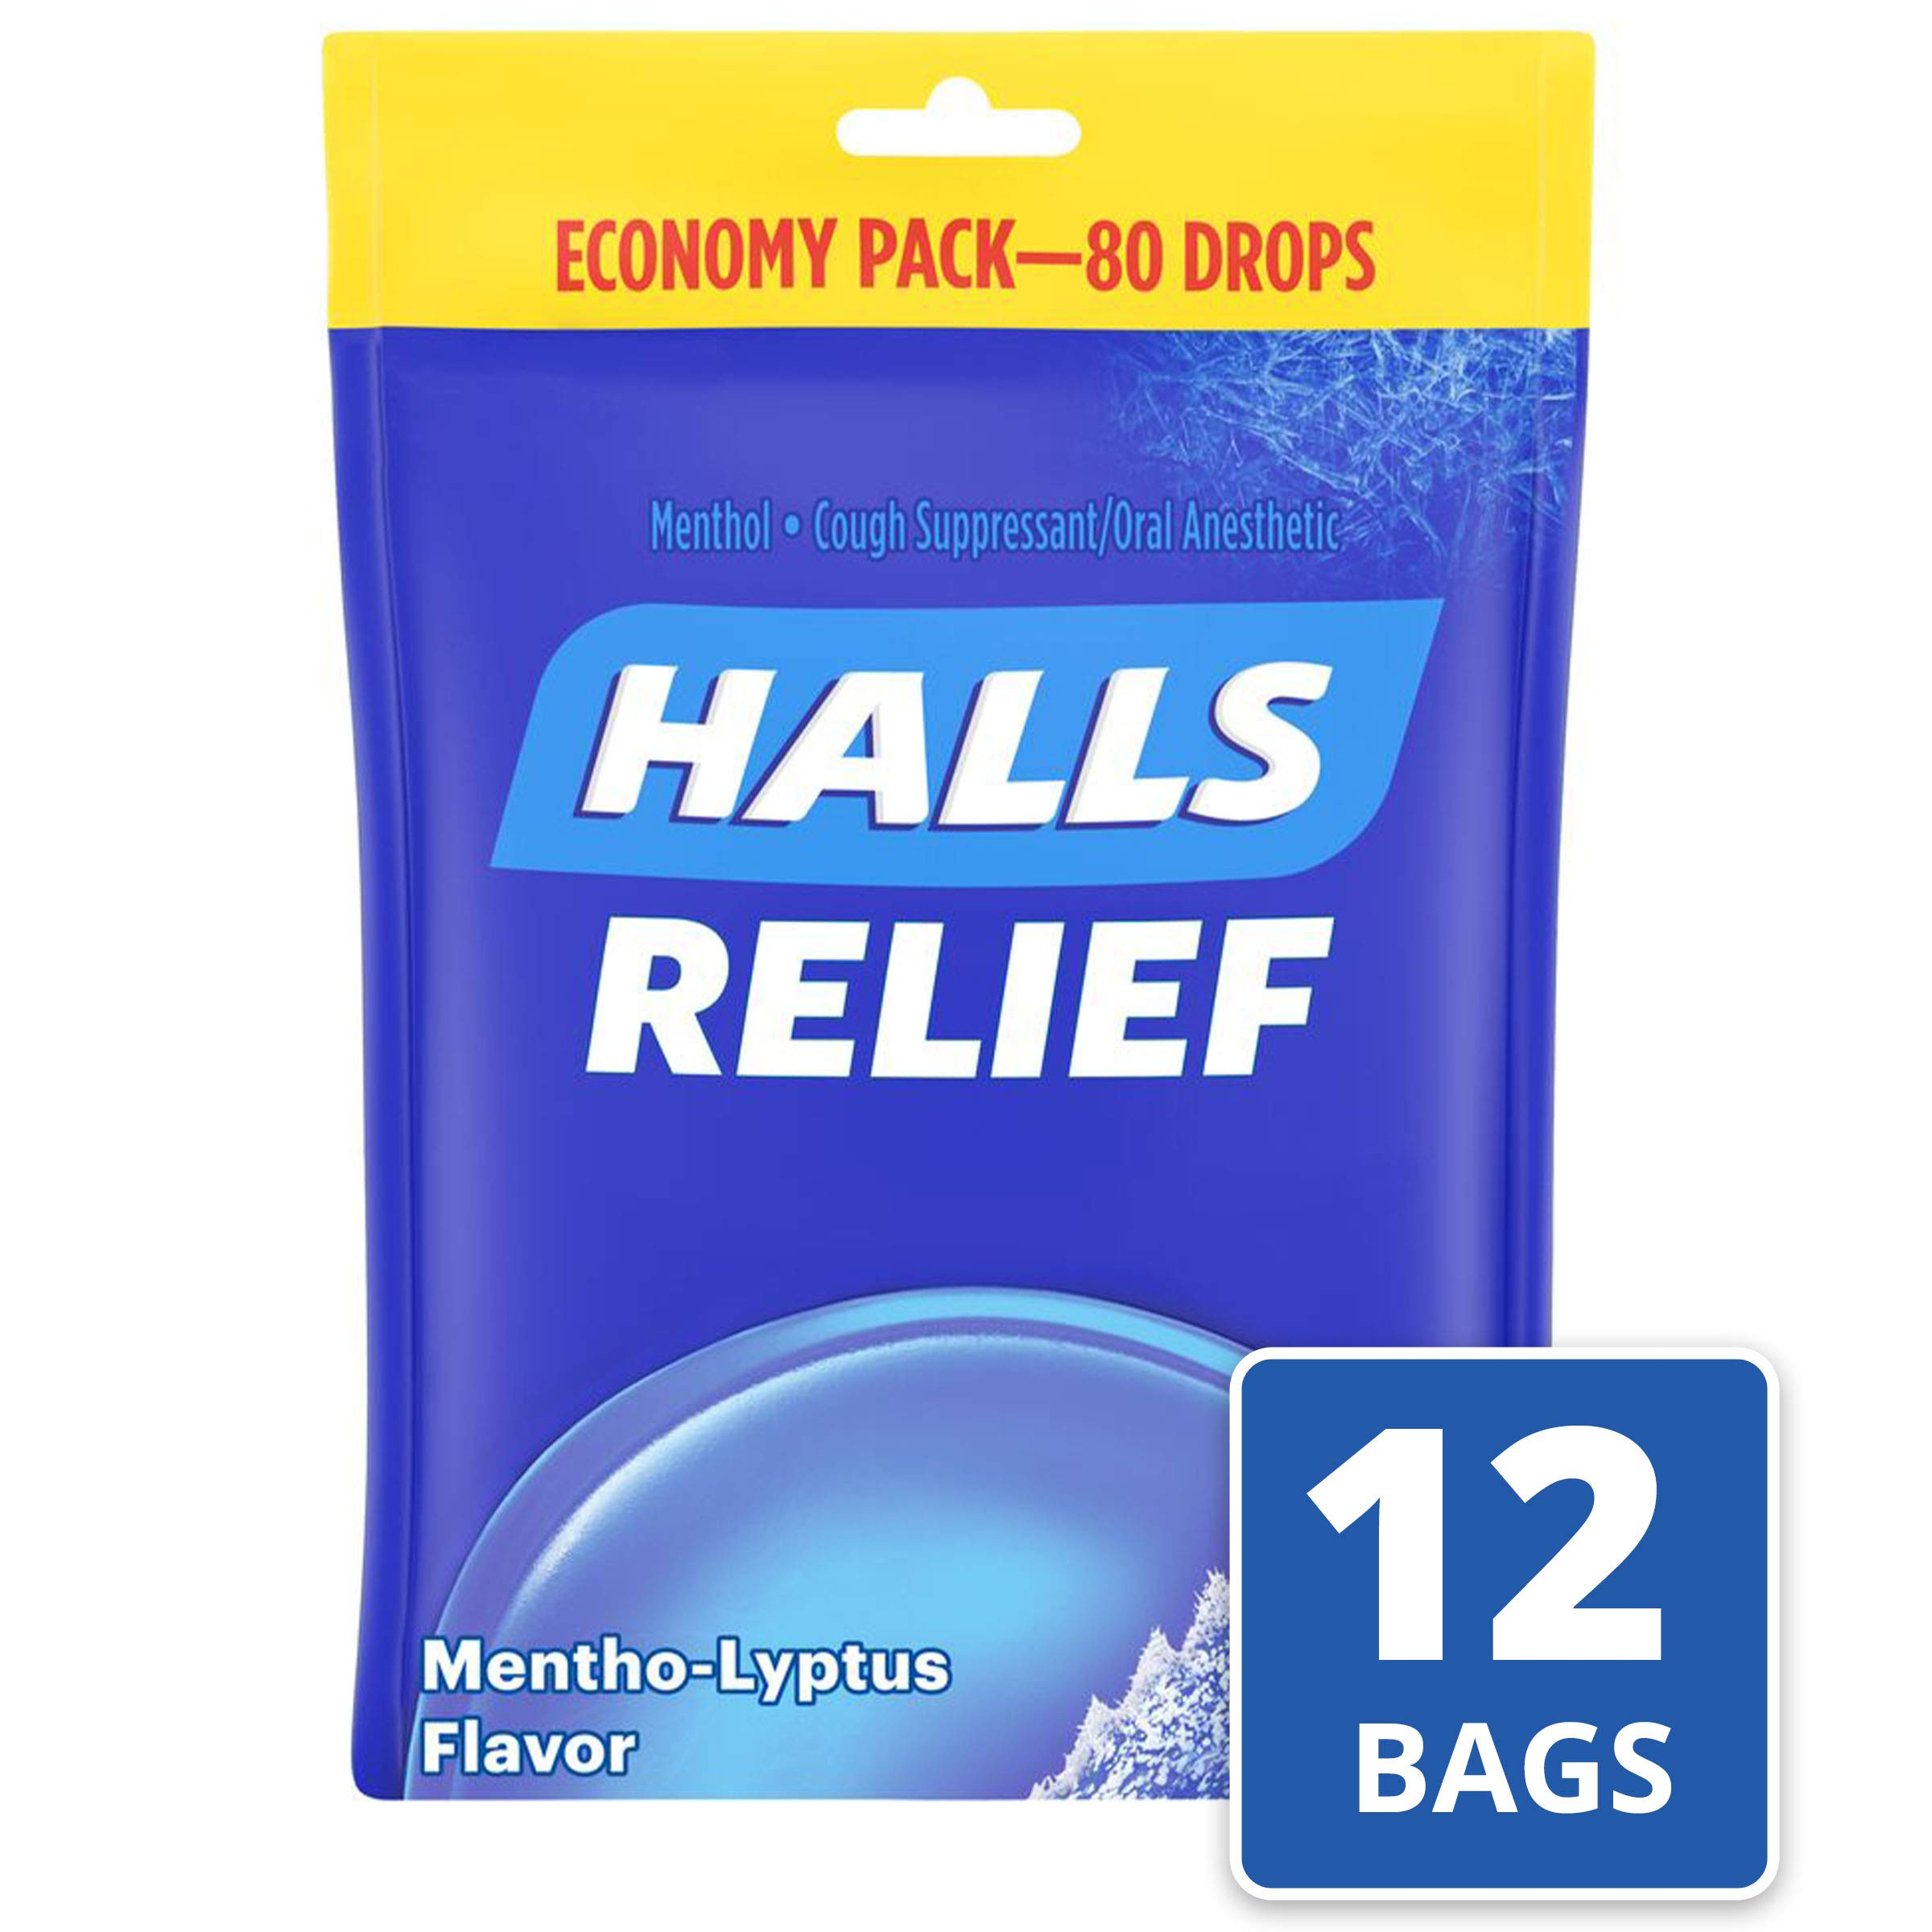 Halls Mentho-Lyptus Cough Drops - with Menthol - 960 Drops (12 bags of 80 drops) by Halls